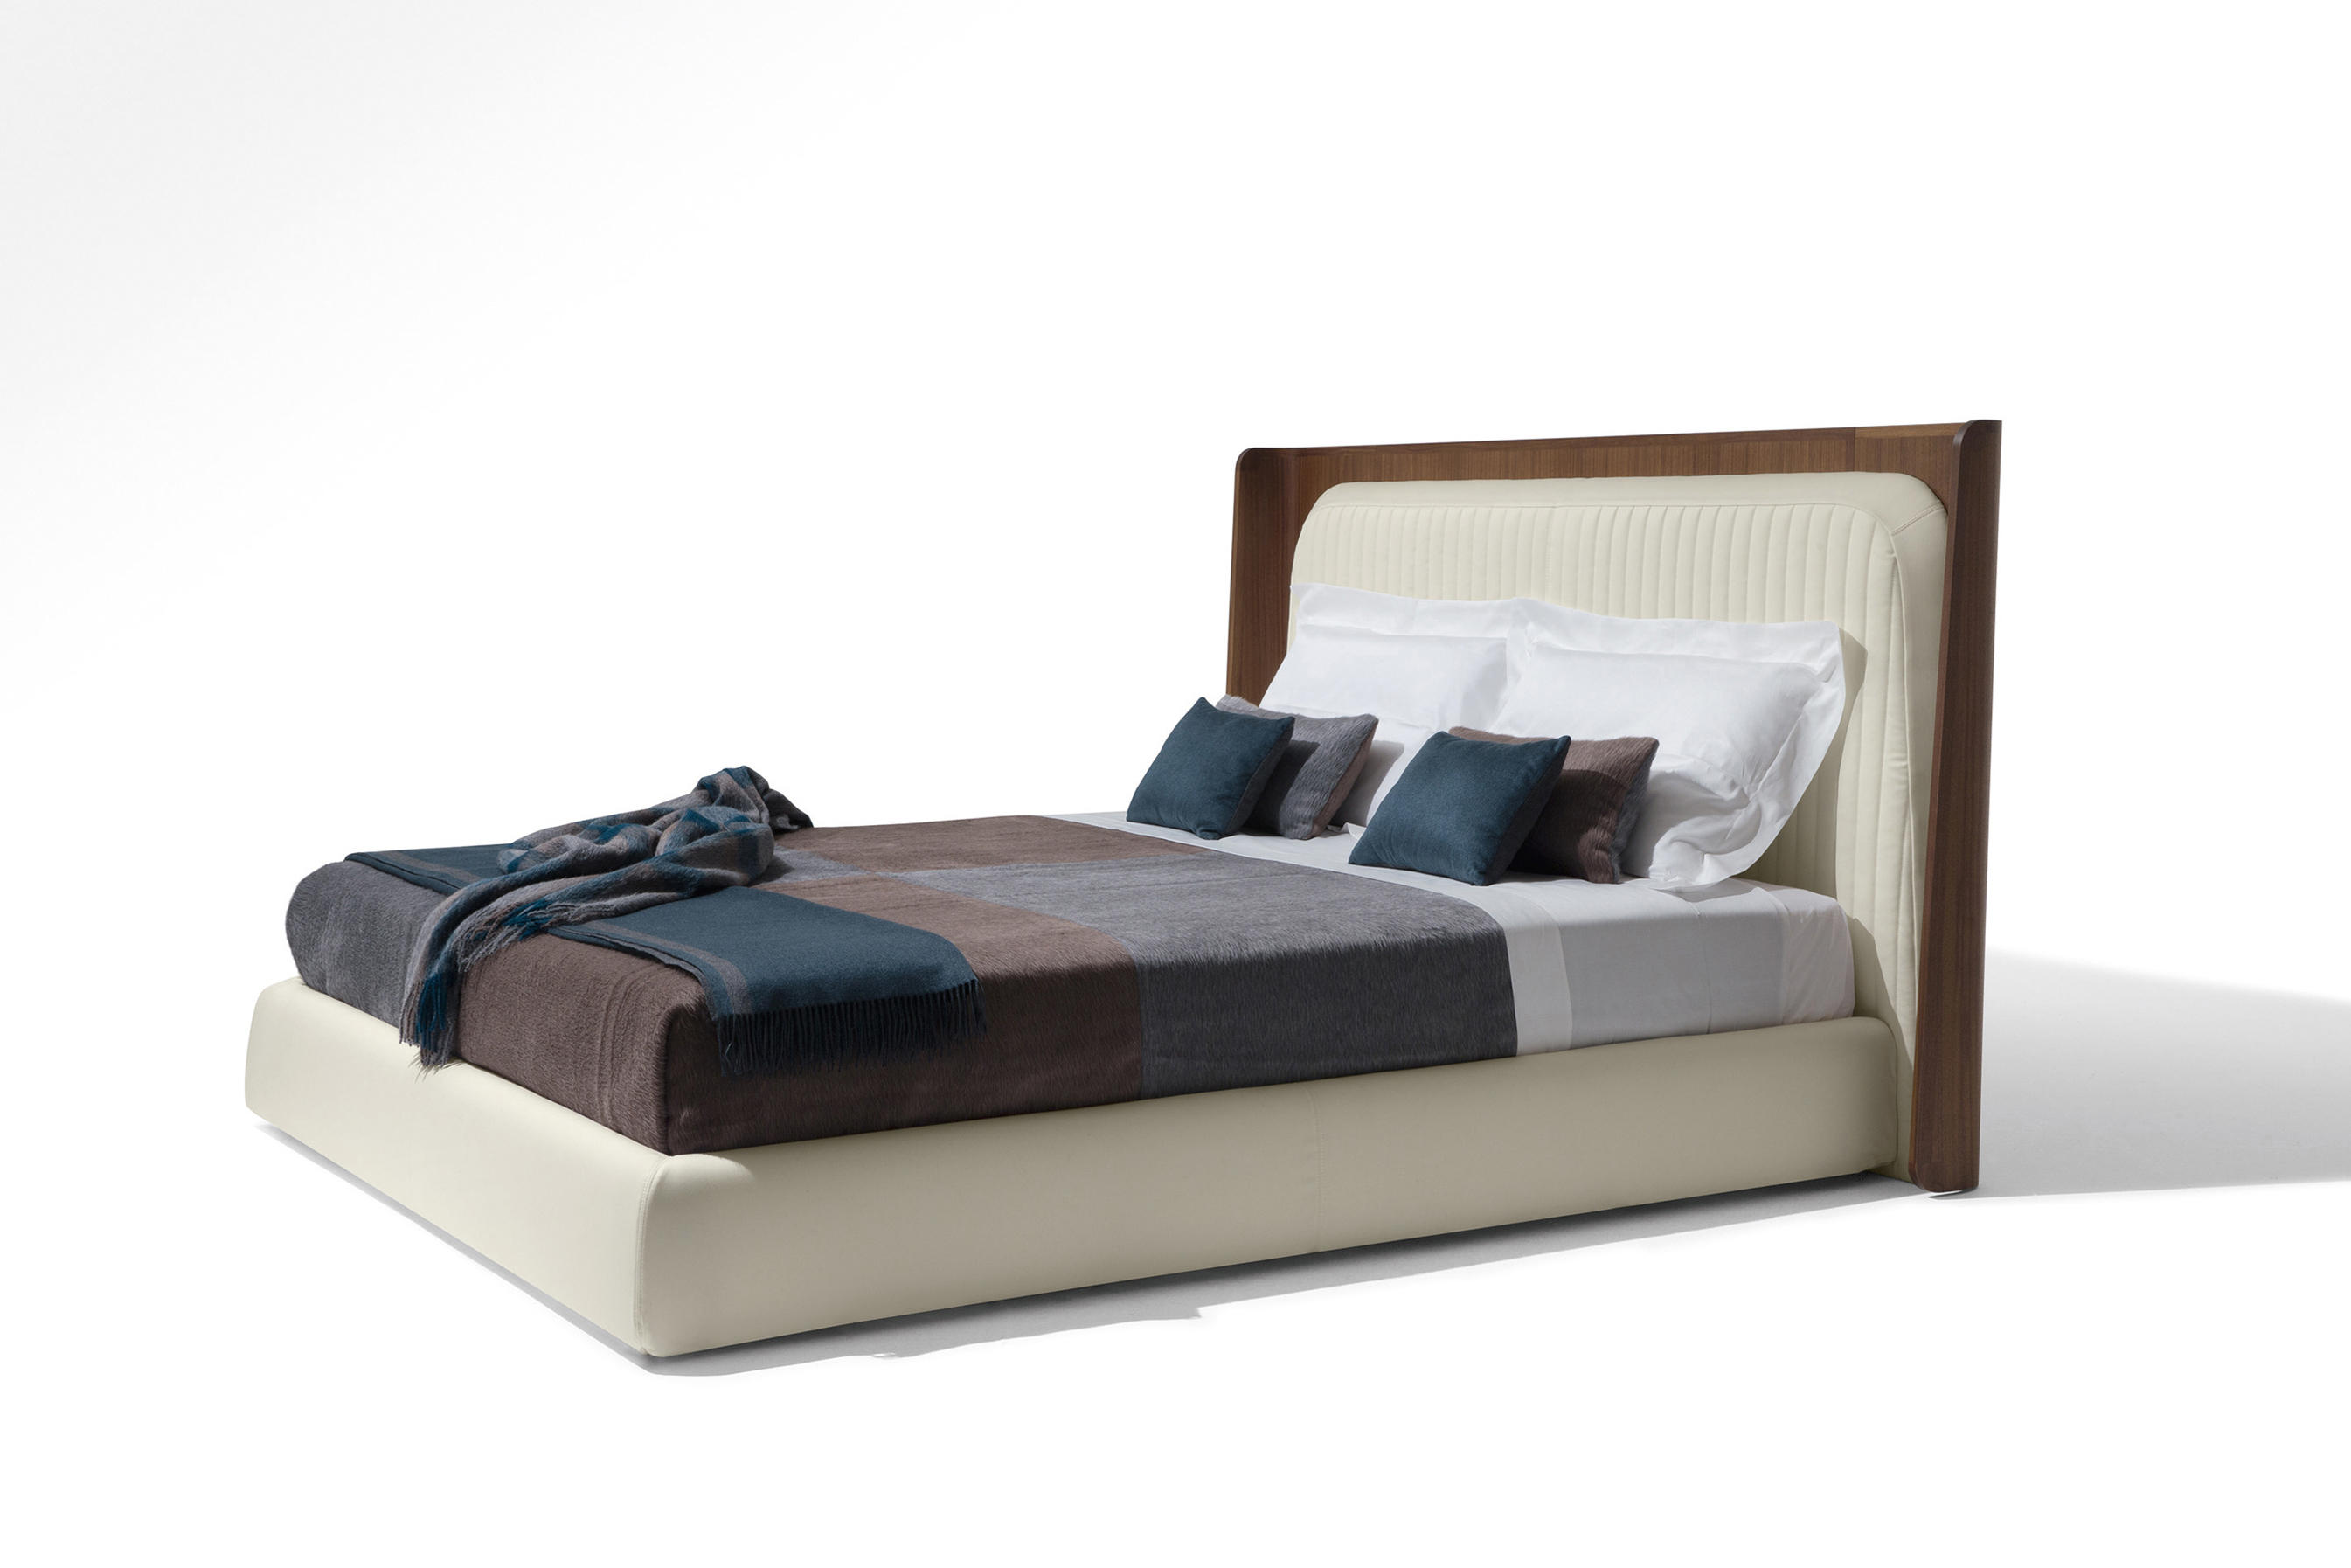 Hypnos Double Bed Beds From Giorgetti Architonic